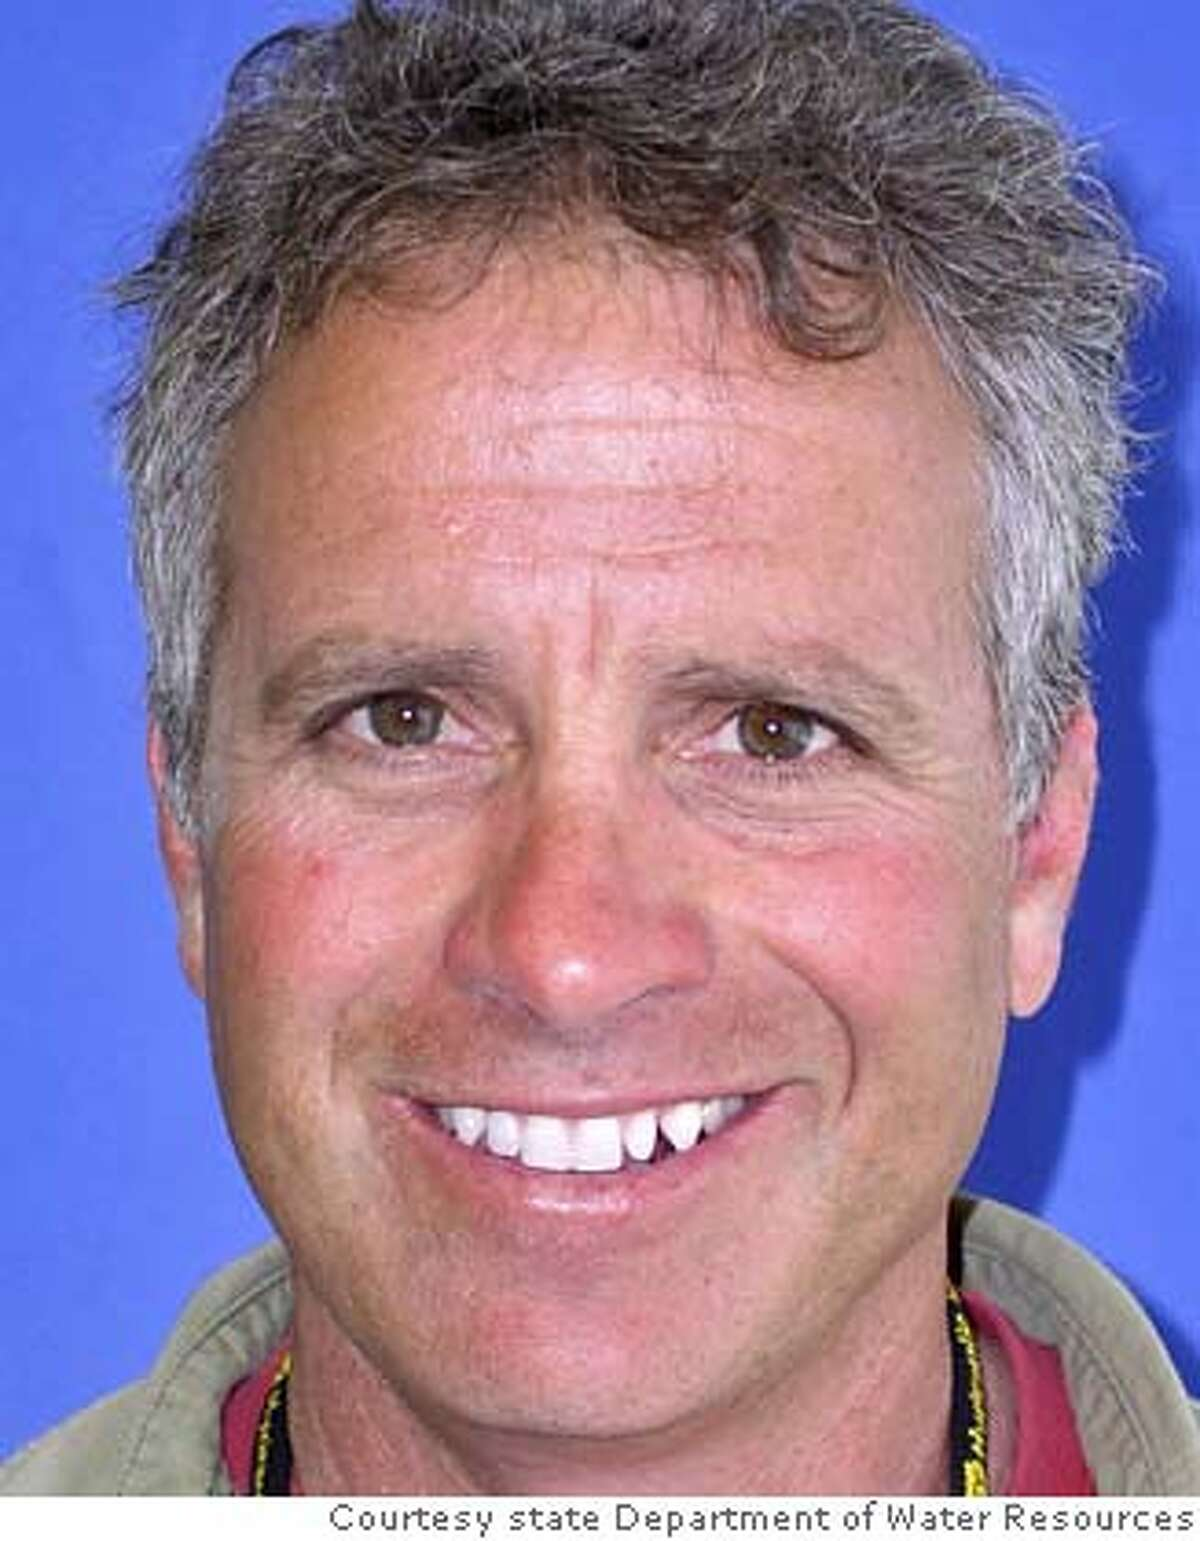 One of the divers who died, Tim Crawford, 50, of Seaside. Credit: Courtesy state Department of Water Resources